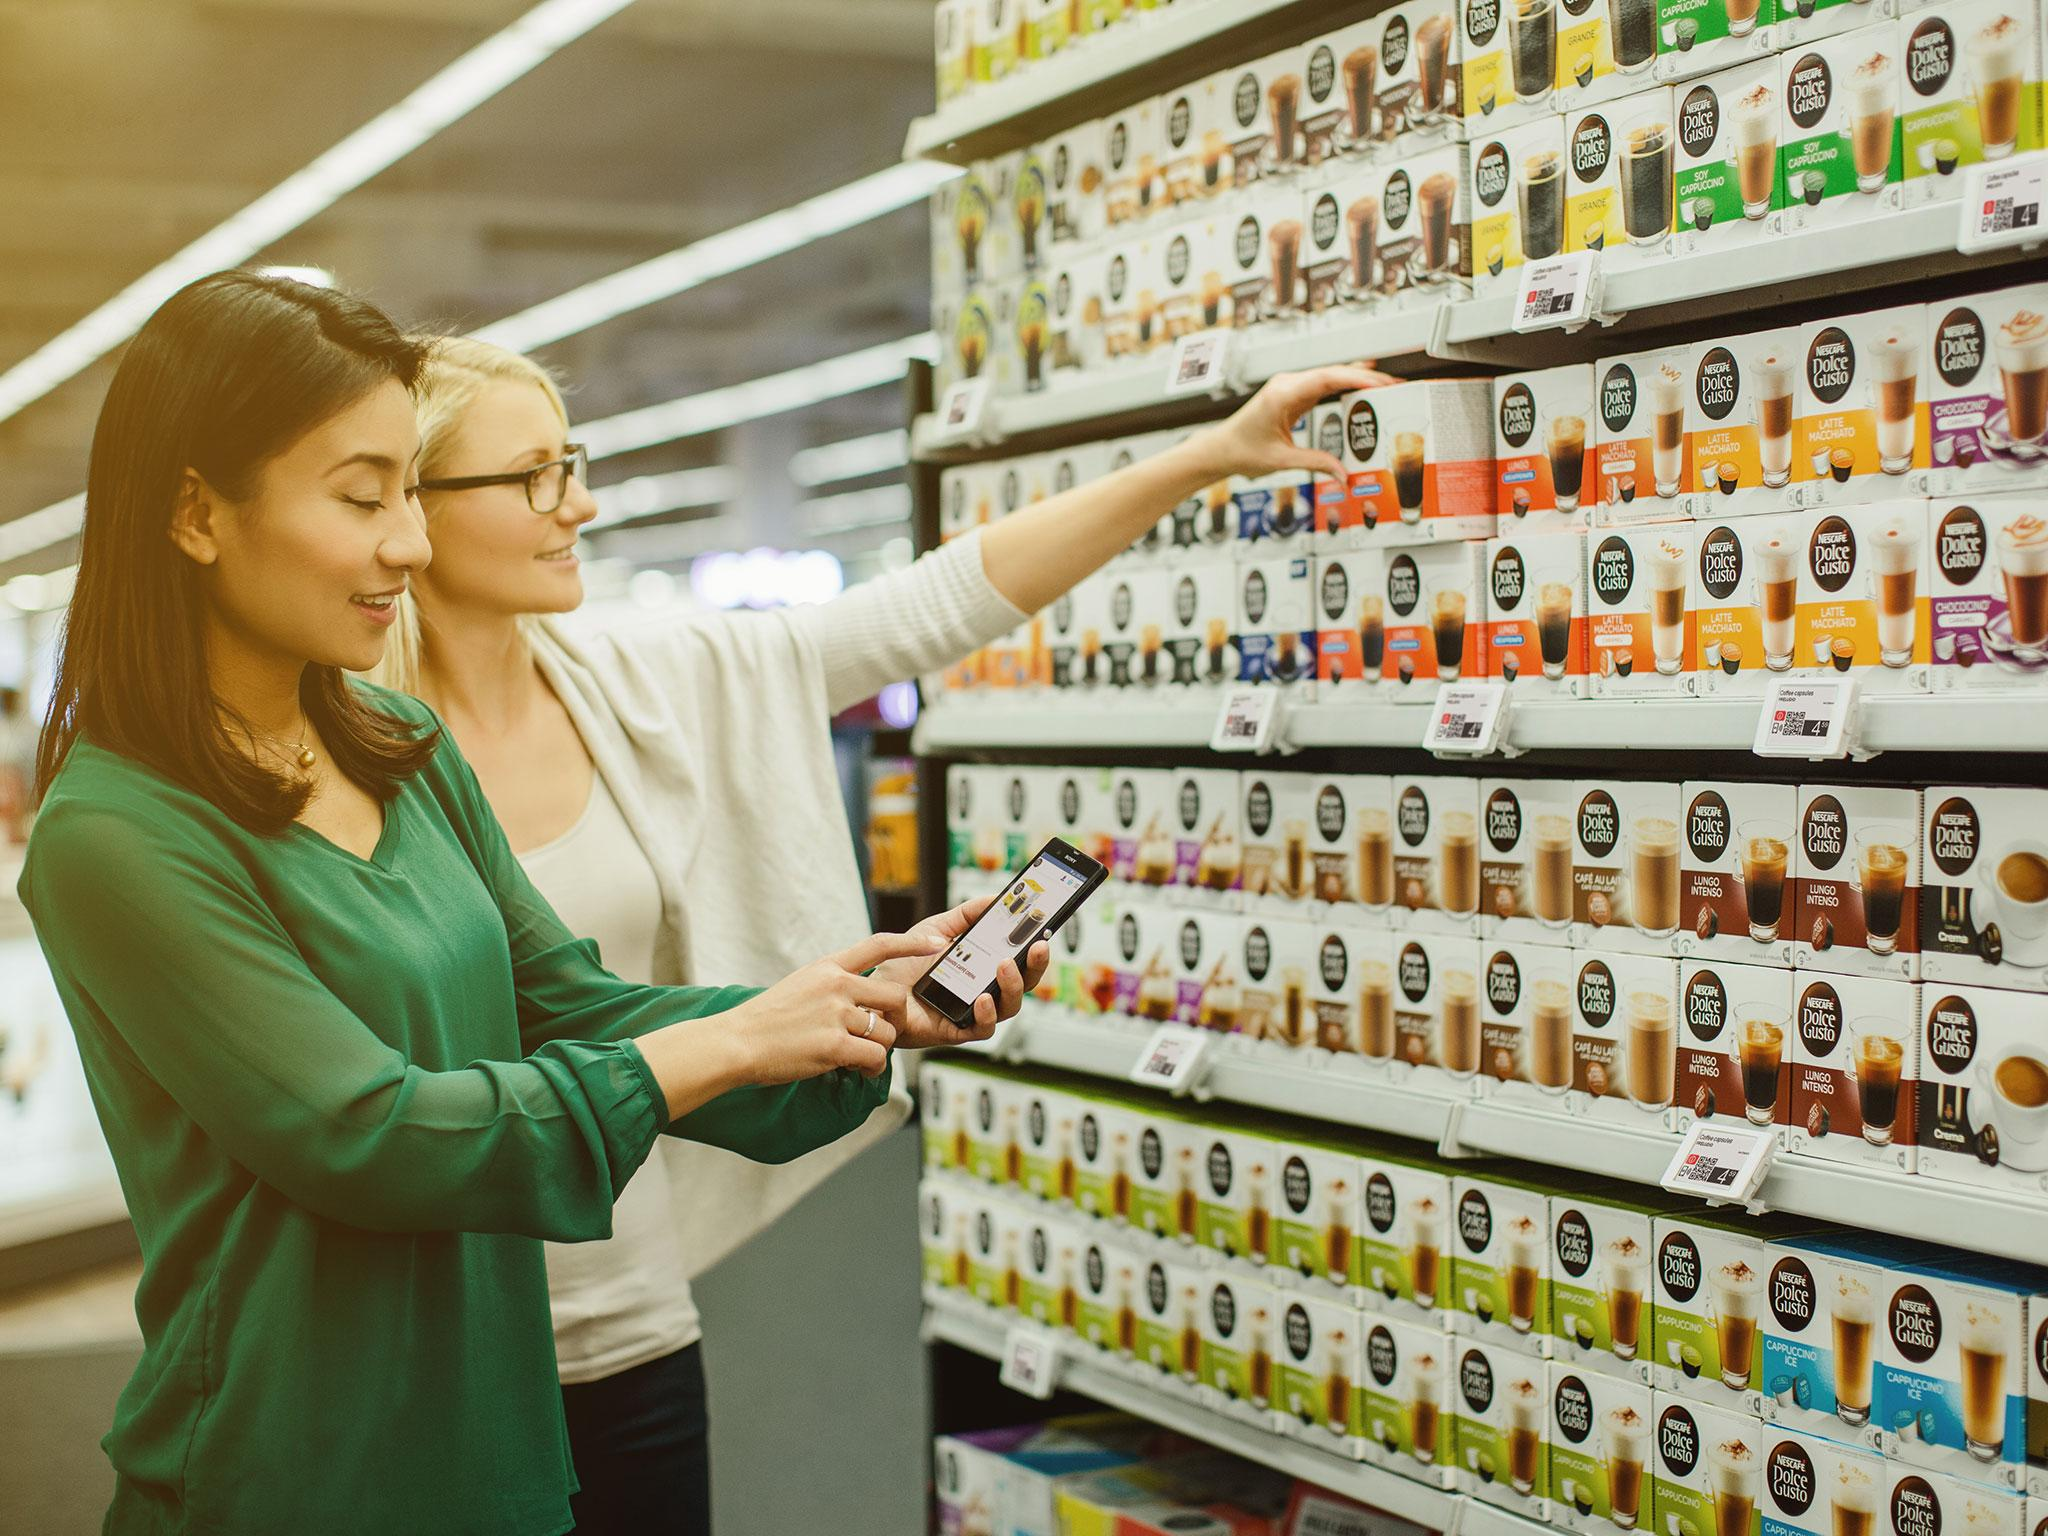 SES-imagotag: The company helping supermarkets to reduce food waste and stop customer rip off